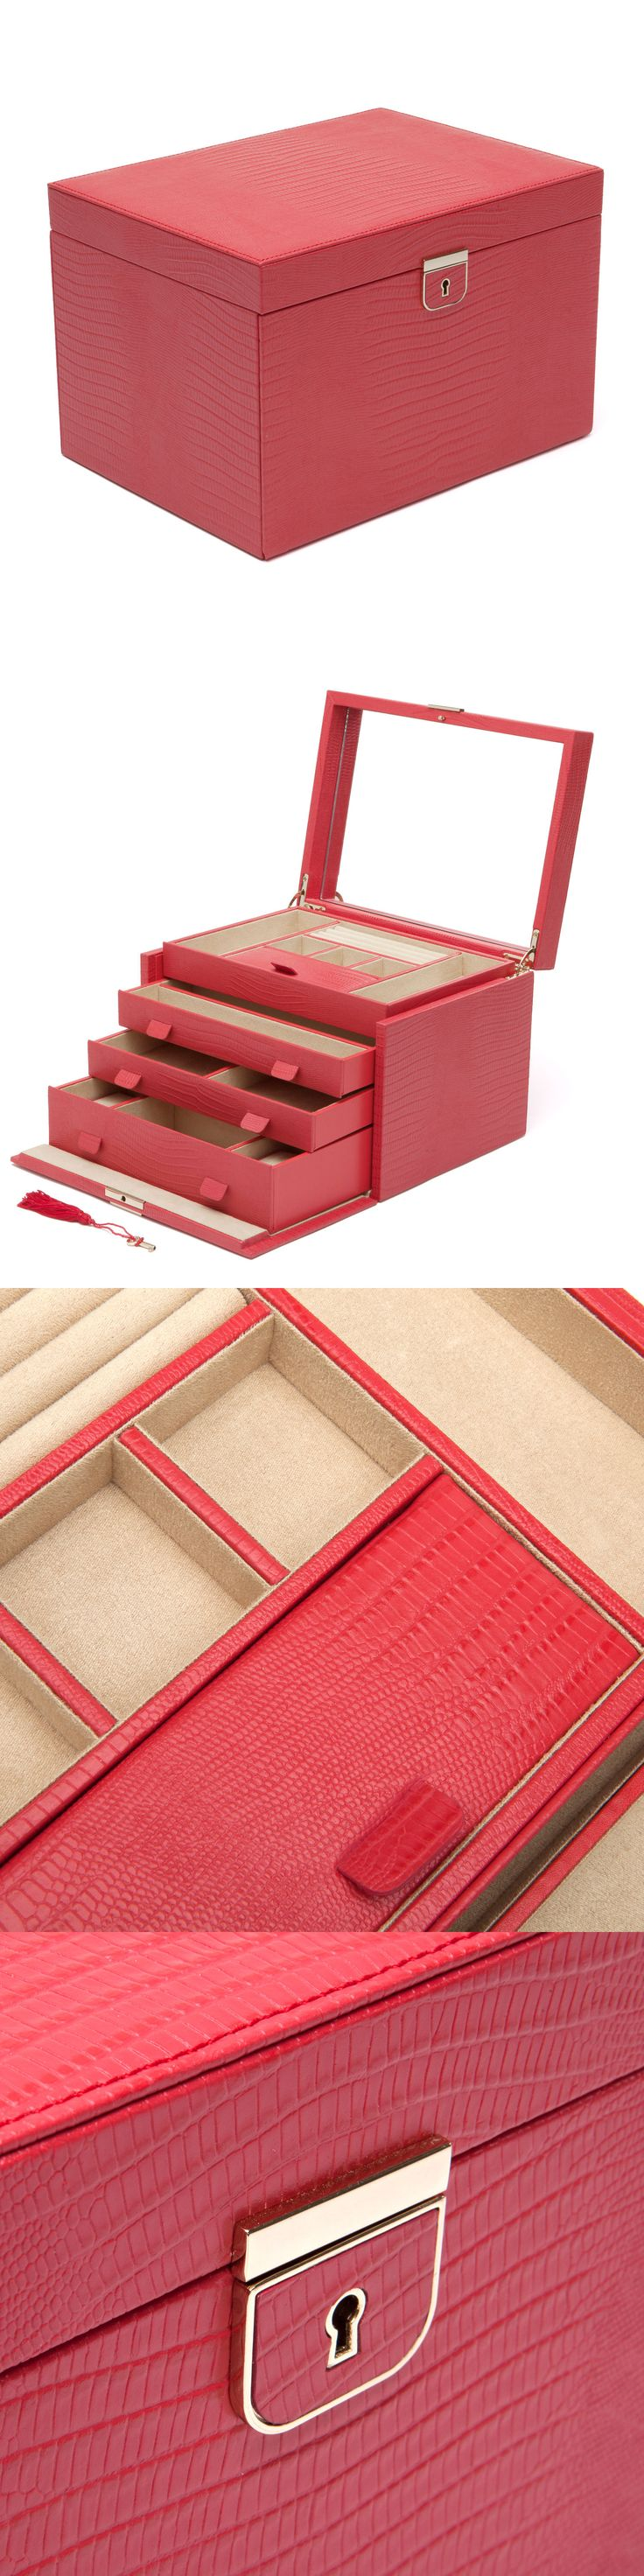 Jewelry Boxes 3820: Wolf Designs Palermo Large Leather Jewelry Box, Coral -> BUY IT NOW ONLY: $245 on eBay!